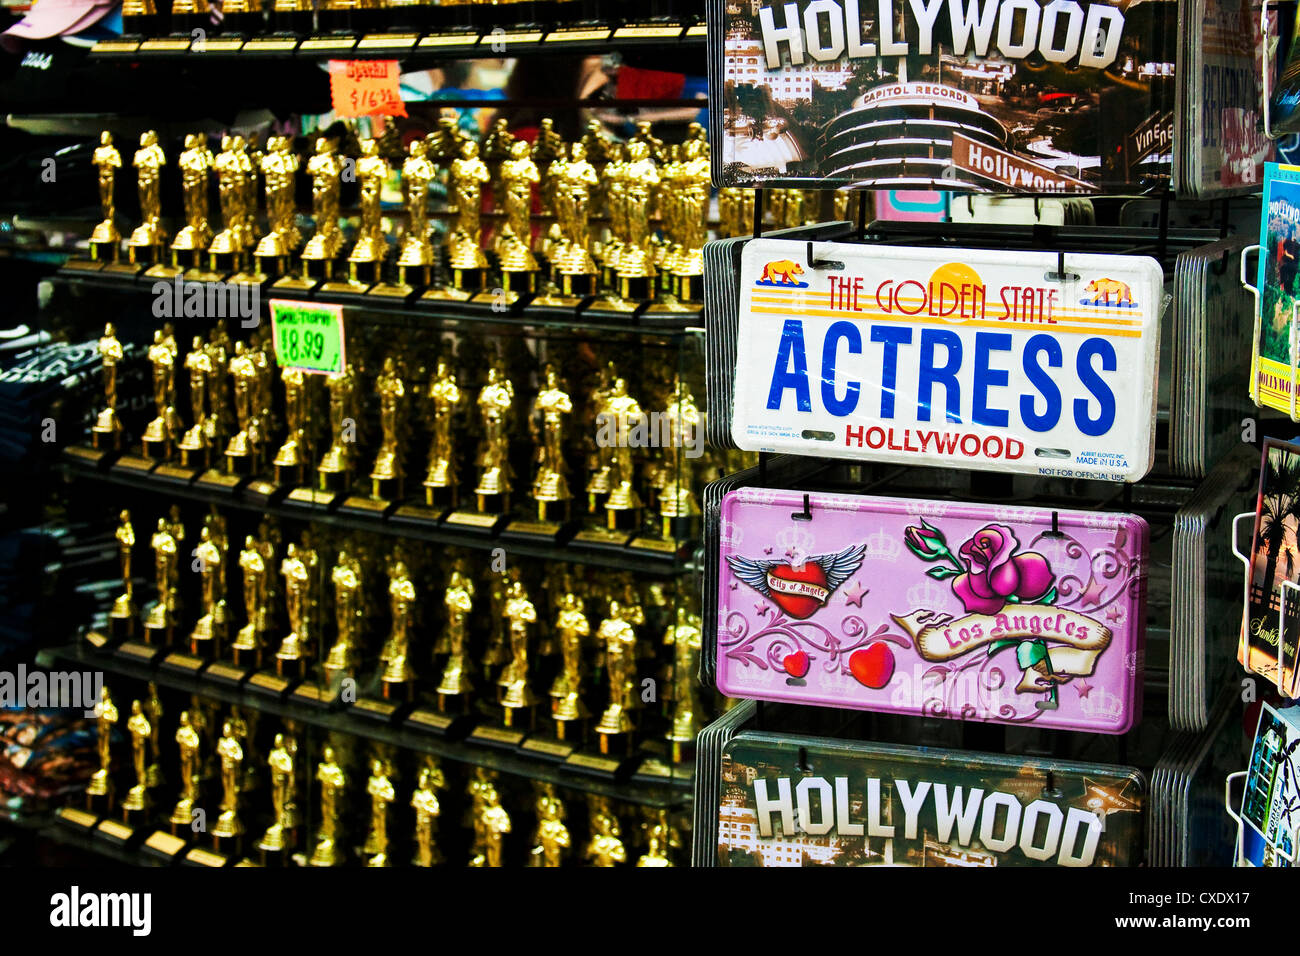 Hollywood Blvd souvenir shop with Actress license plate and mini Oscar statues in background - Stock Image